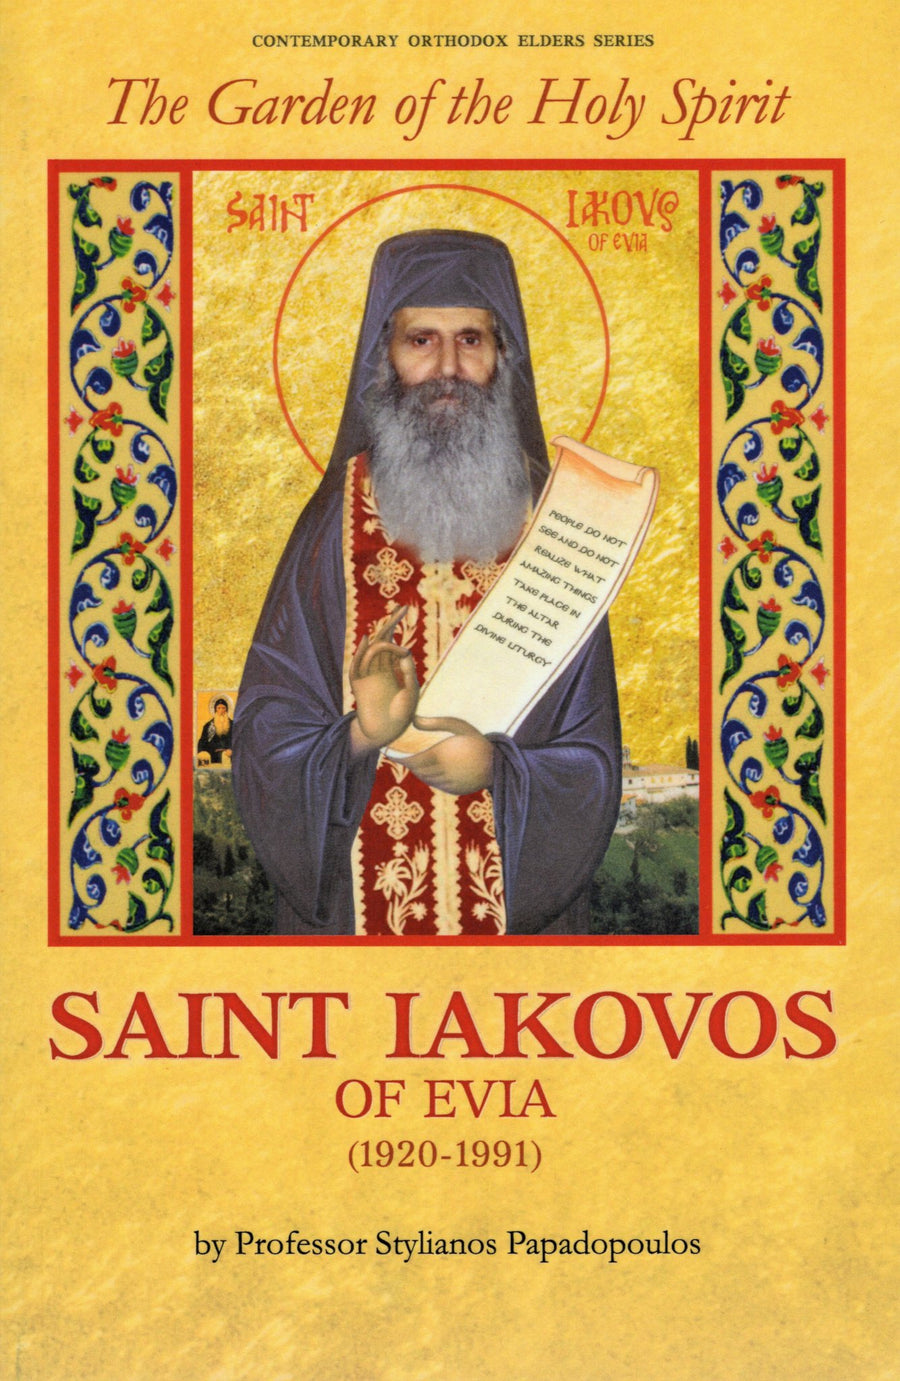 The Garden of the Holy Spirit - Saint Iakovos of Evia